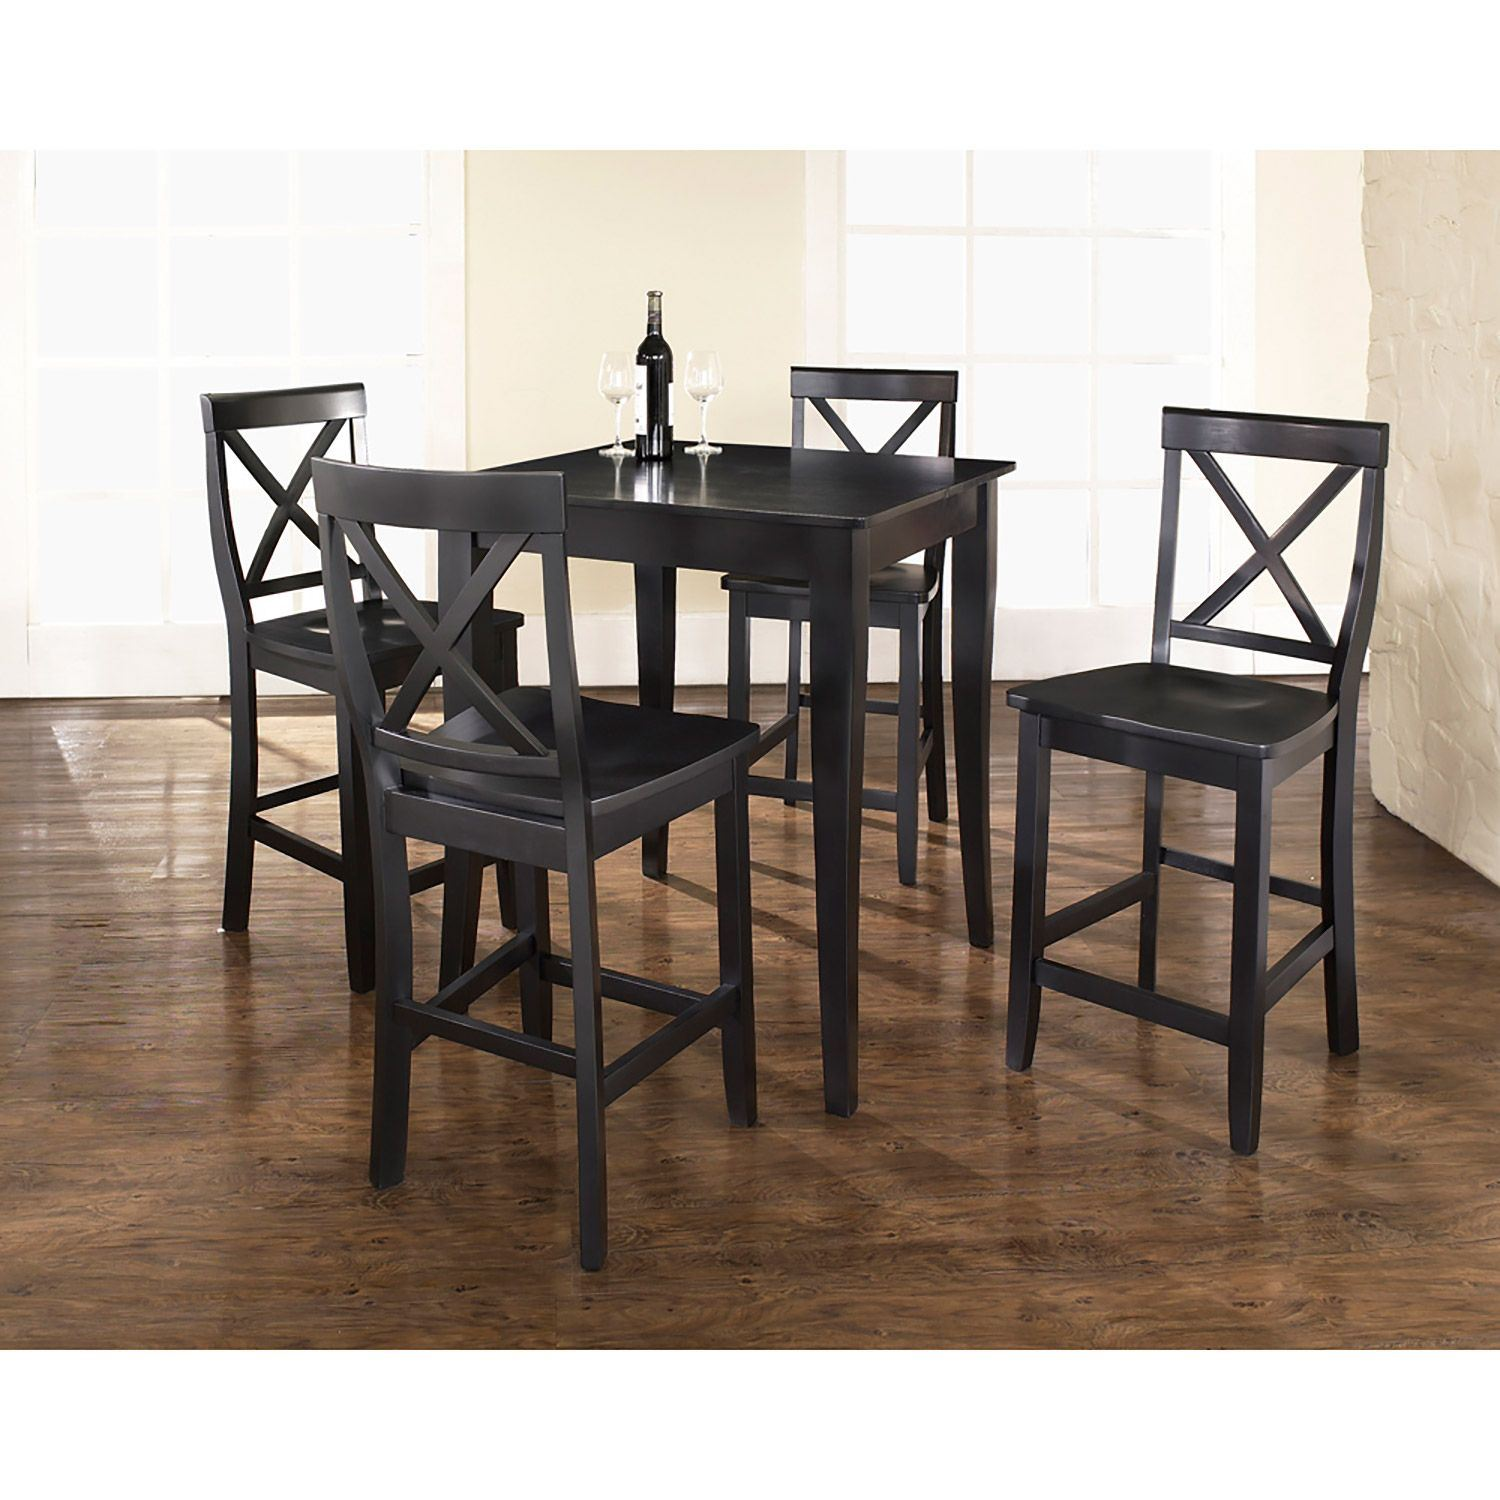 Picture of 5-Piece Pub Dining Set, Black *D